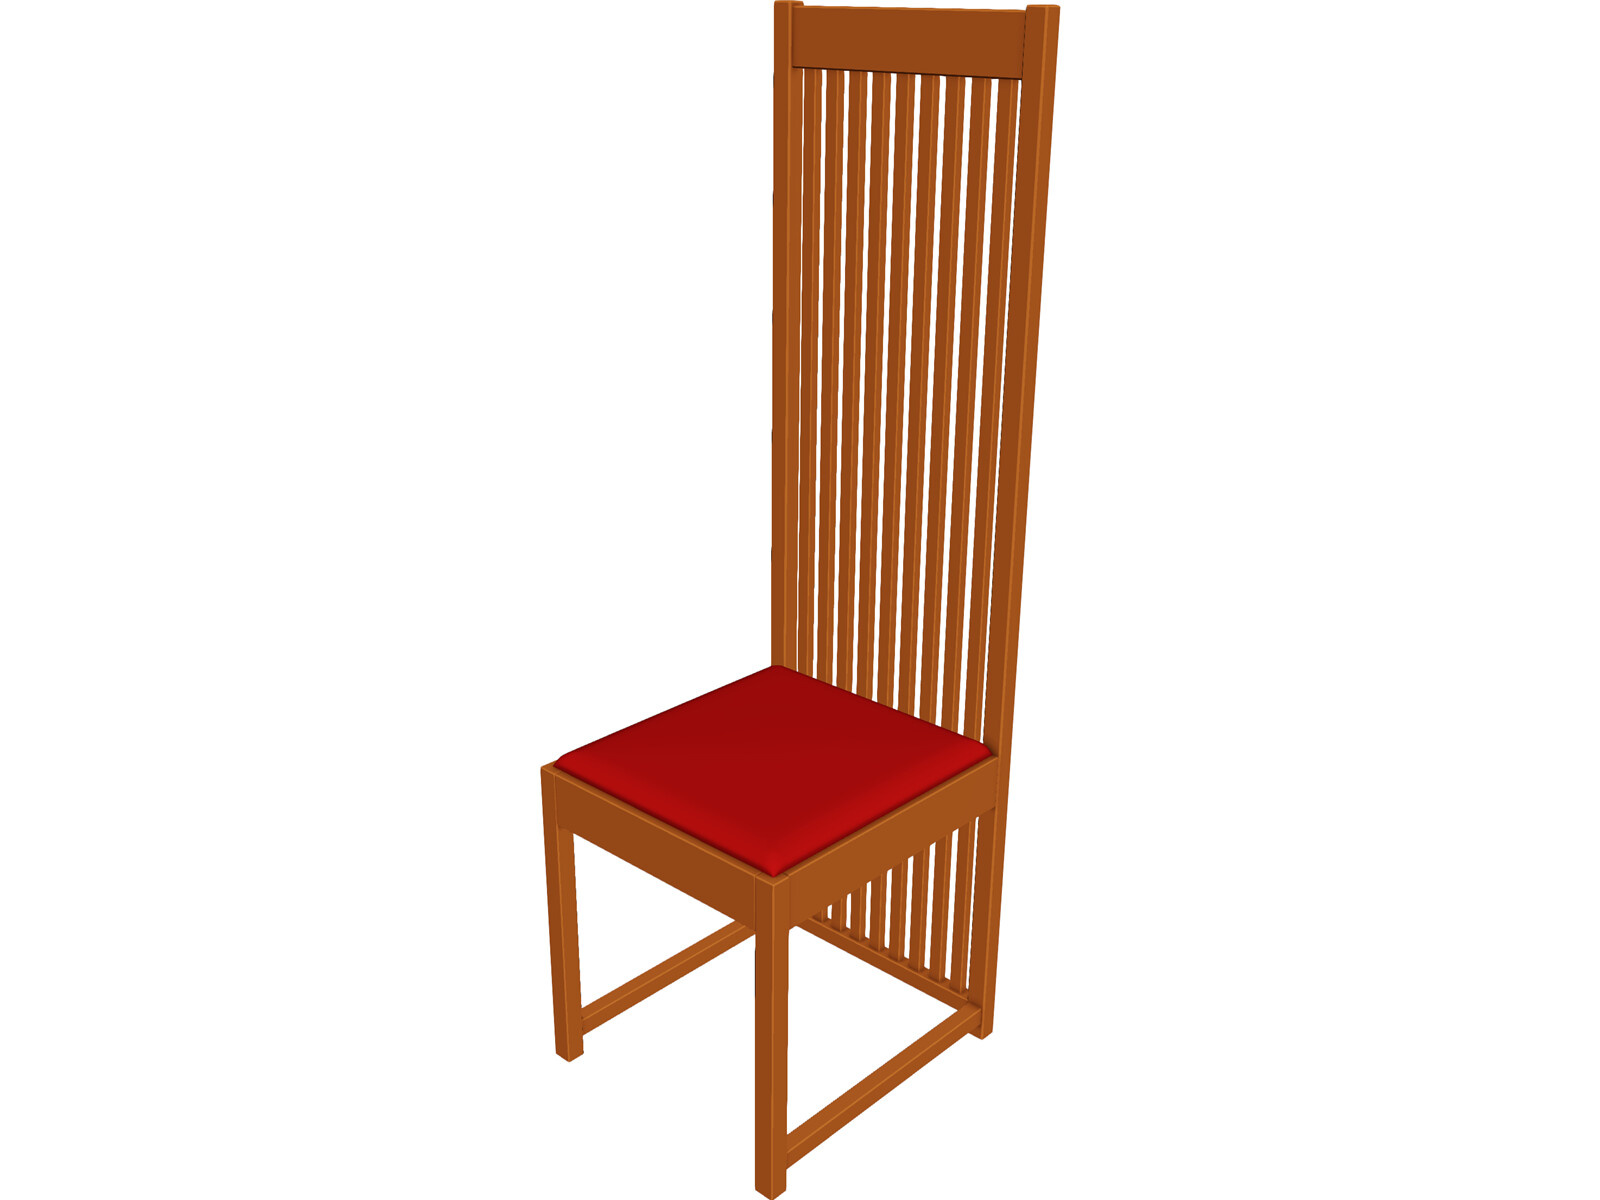 Chair side 3d model 3d cad browser for Chair 3d model maya